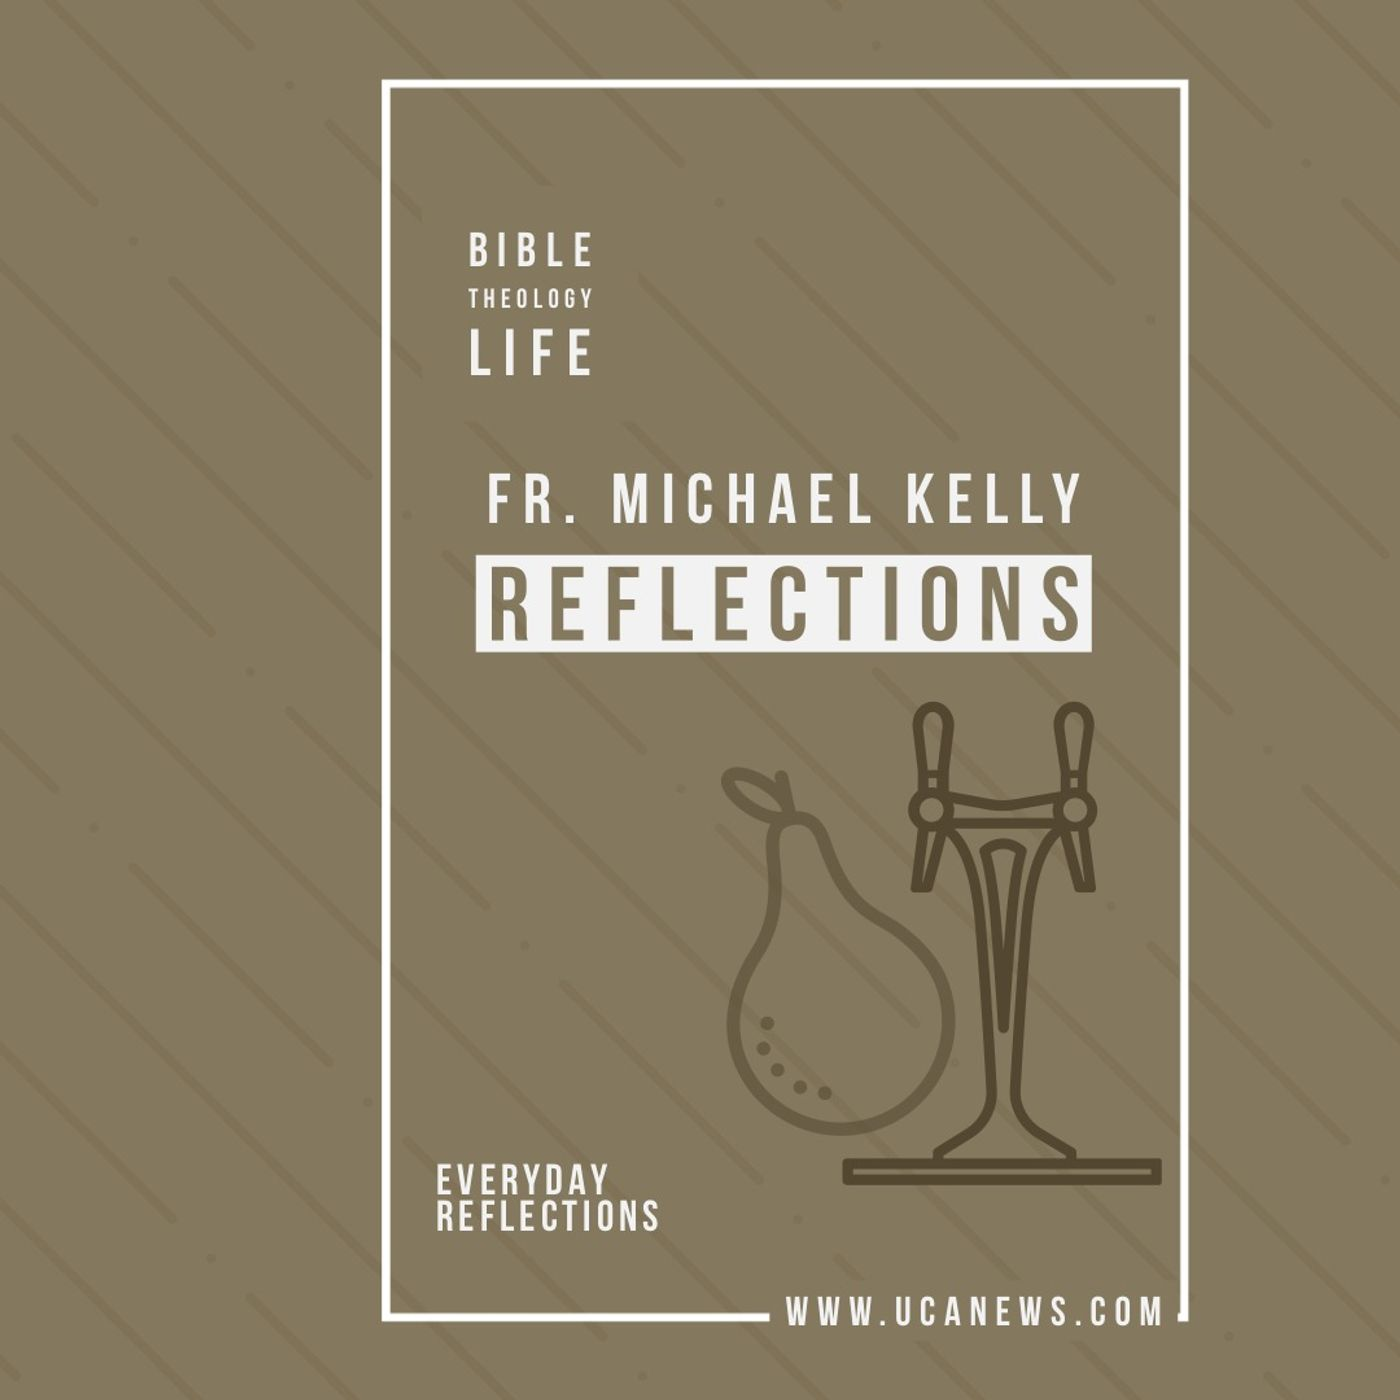 Reflections with Fr. Michael Kelly - Thursday 23 Sept, 2021